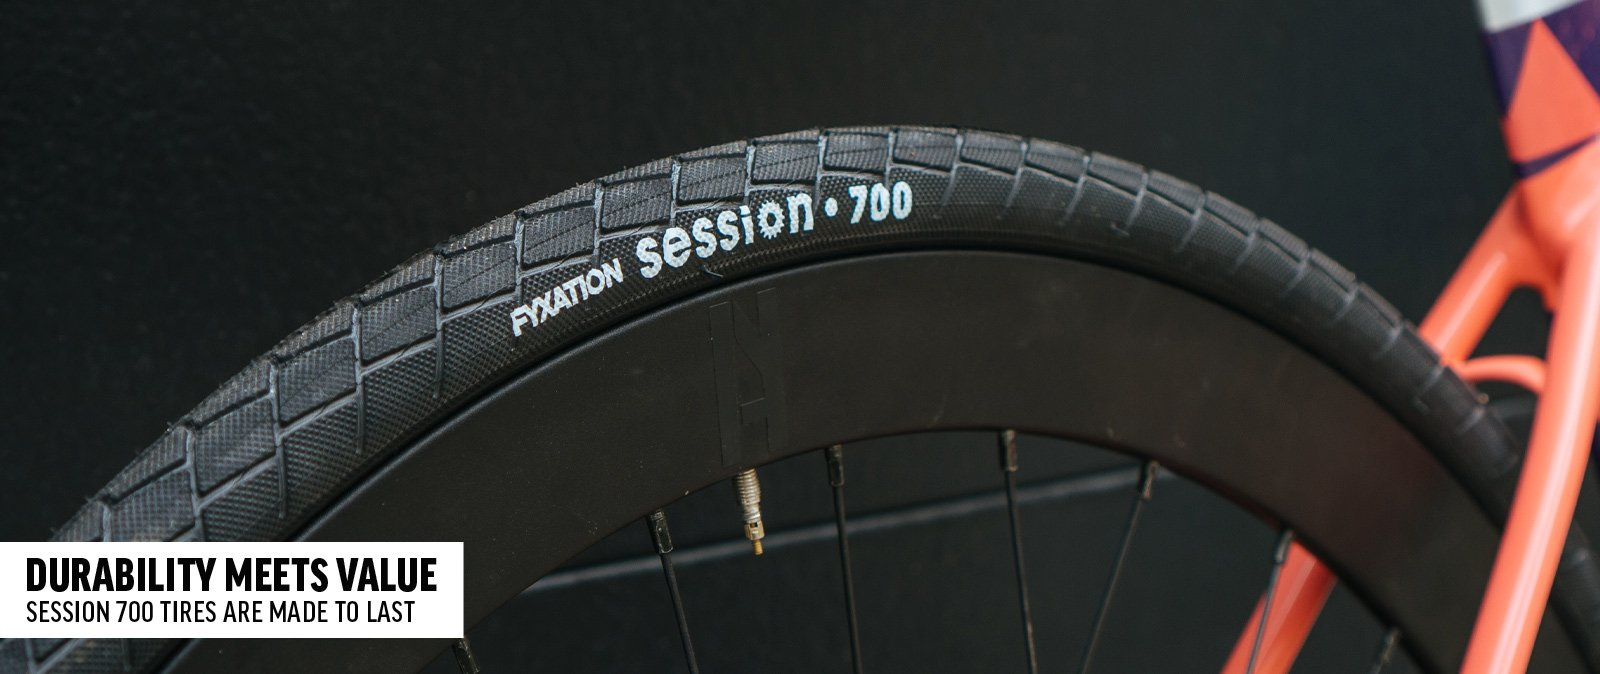 Urban Tire - Fyxation Session 700